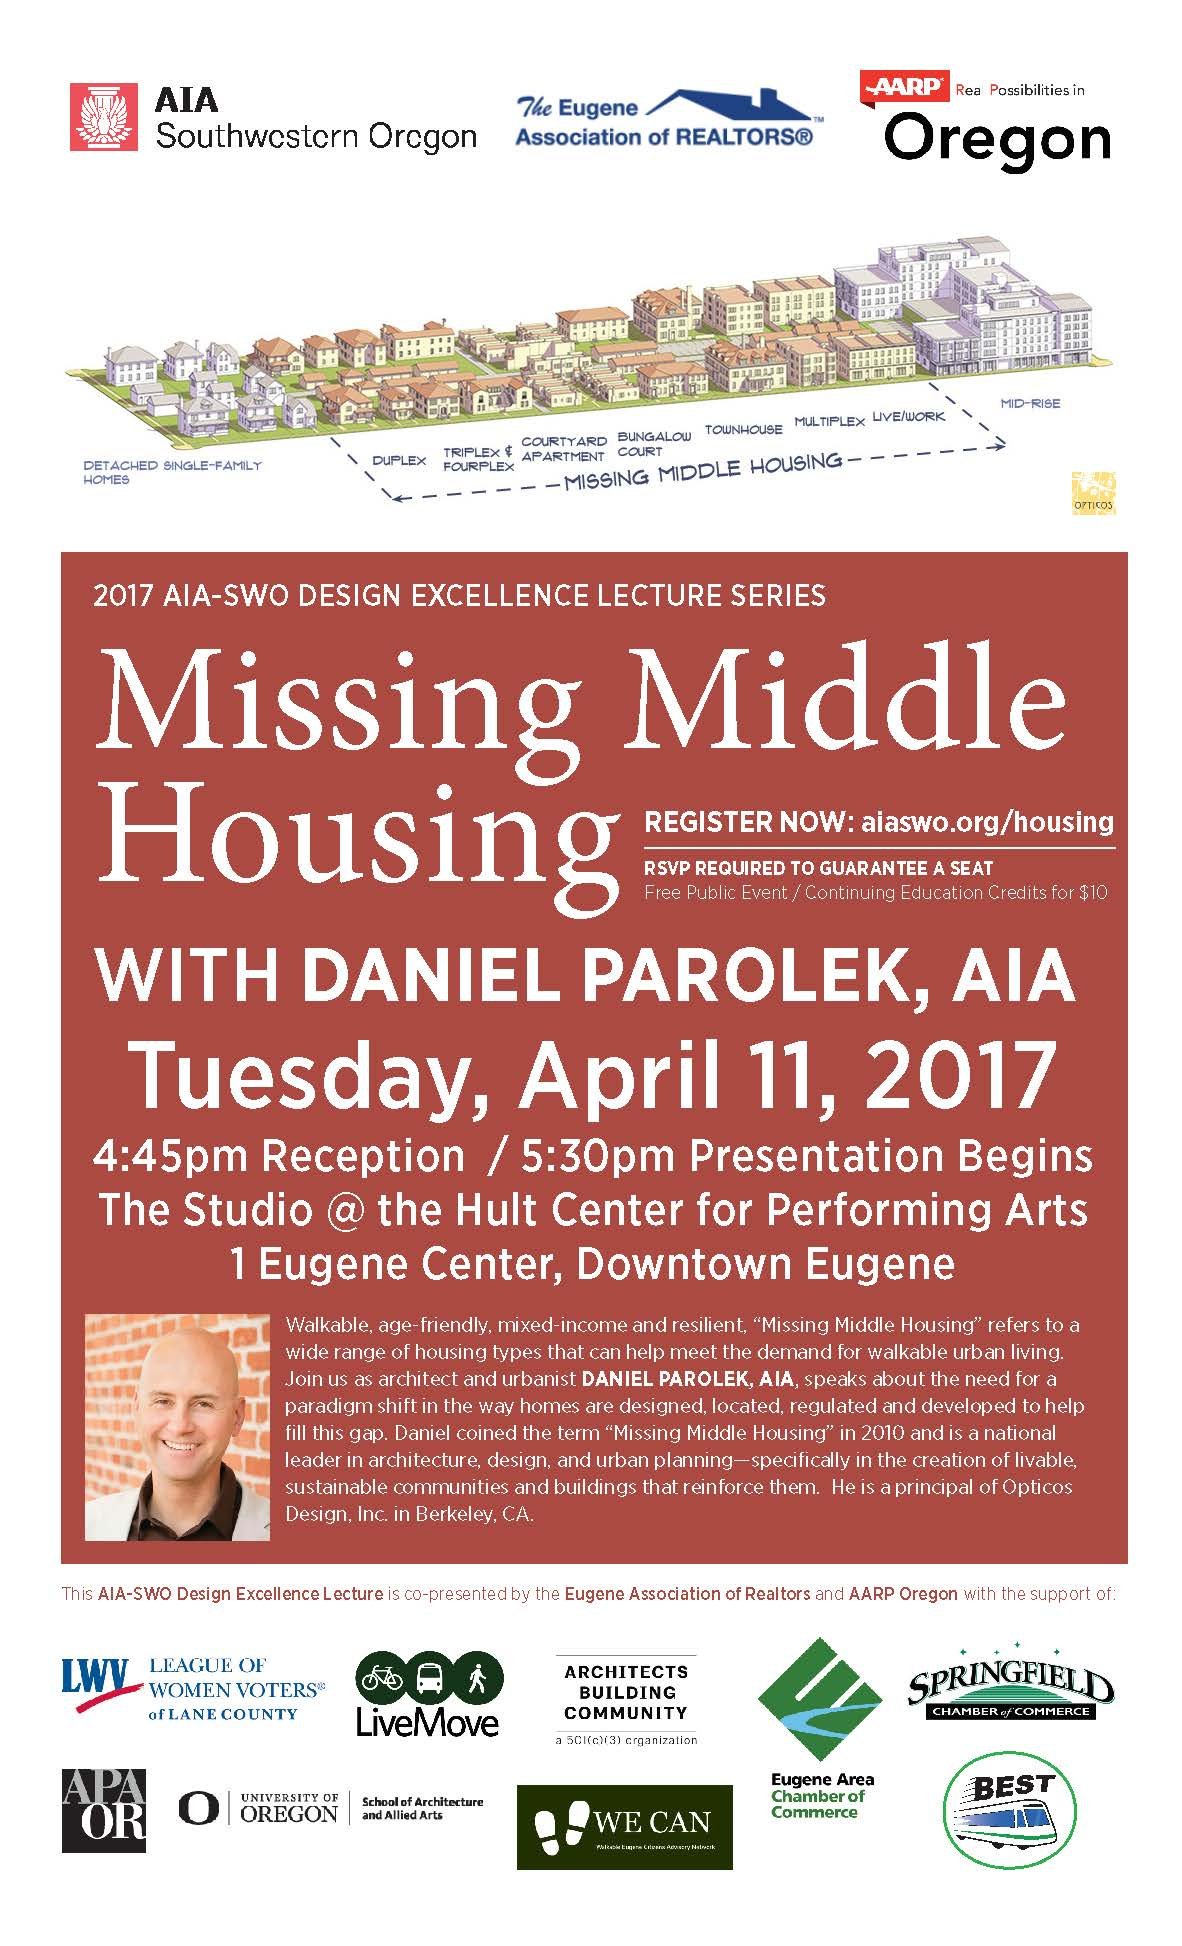 SavetheDate_MissingMiddleHousing_Event.jpg